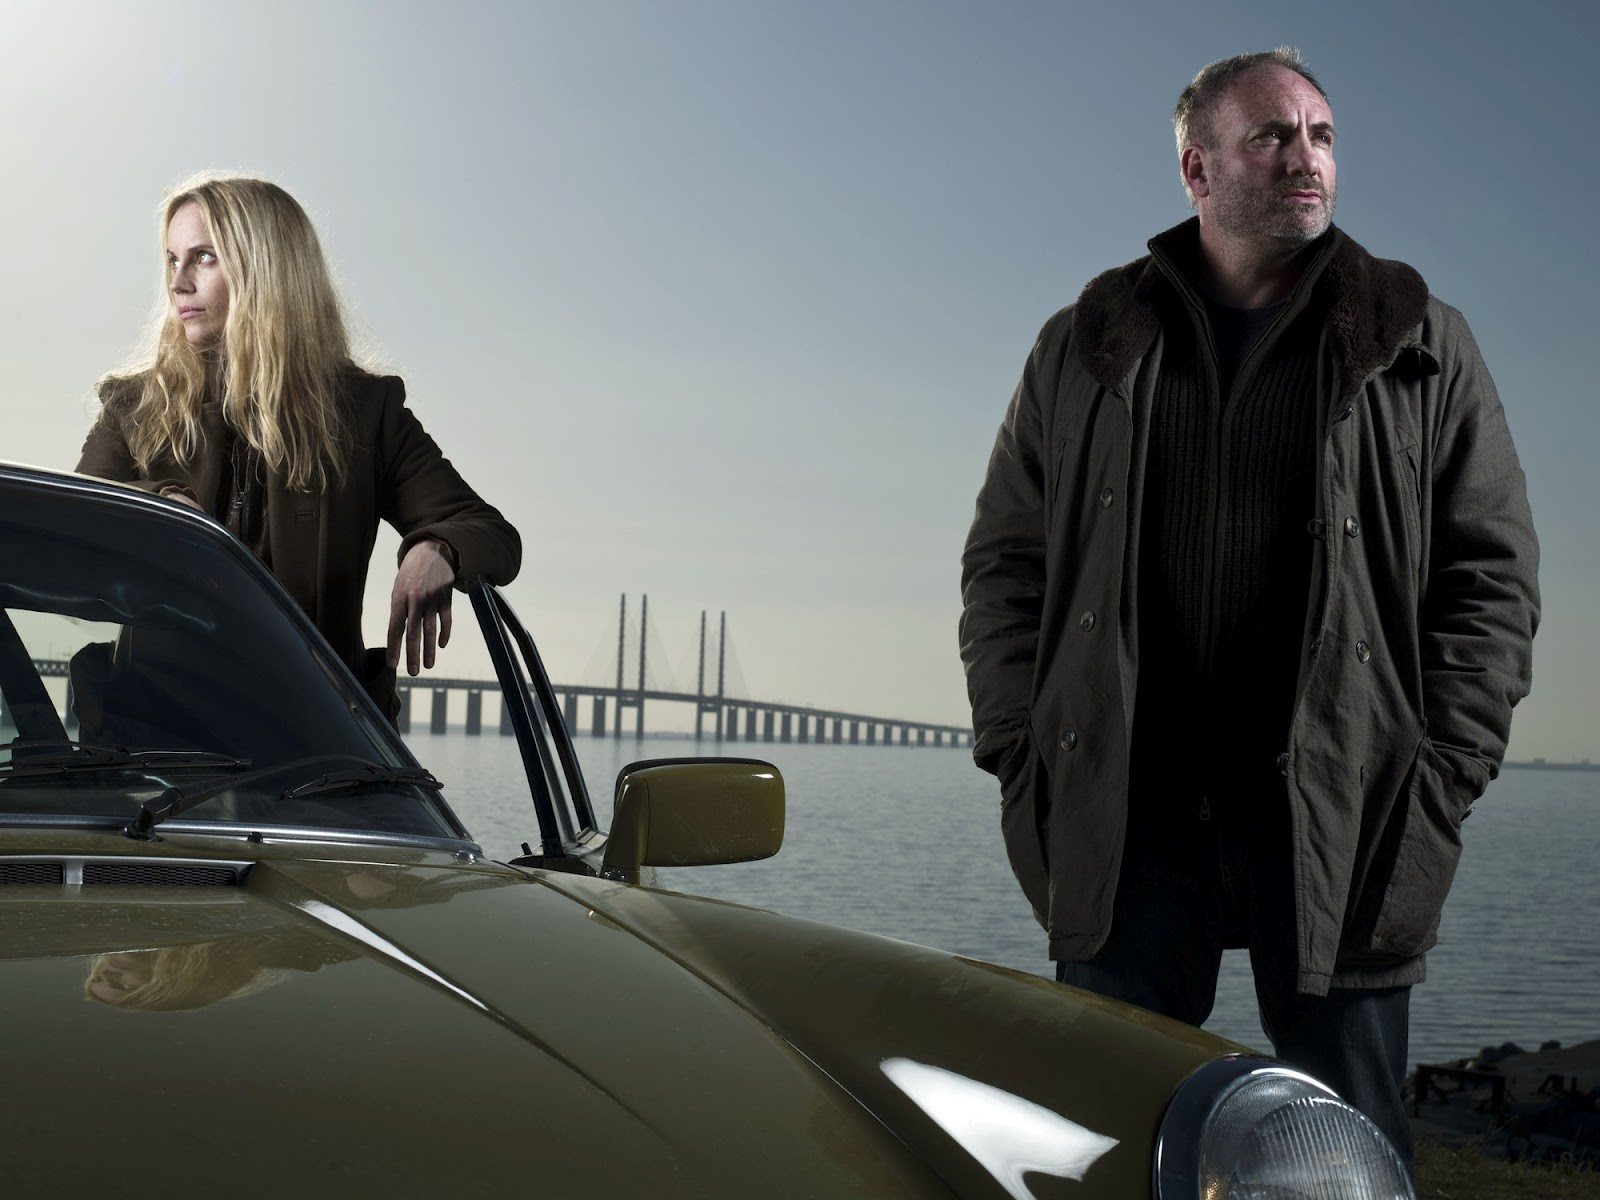 kim bodnia quits the bridgekim bodnia the bridge season 4, kim bodnia twitter, kim bodnia height, kim bodnia wife, kim bodnia instagram, kim bodnia facebook, kim bodnia, kim bodnia the bridge, kim bodnia imdb, kim bodnia pusher, kim bodnia bron, kim bodnia broen, kim bodnia wiki, kim bodnia broen 3, kim bodnia quits, kim bodnia hoppar av bron, kim bodnia kone, kim bodnia jøde, kim bodnia quits the bridge, kim bodnia film